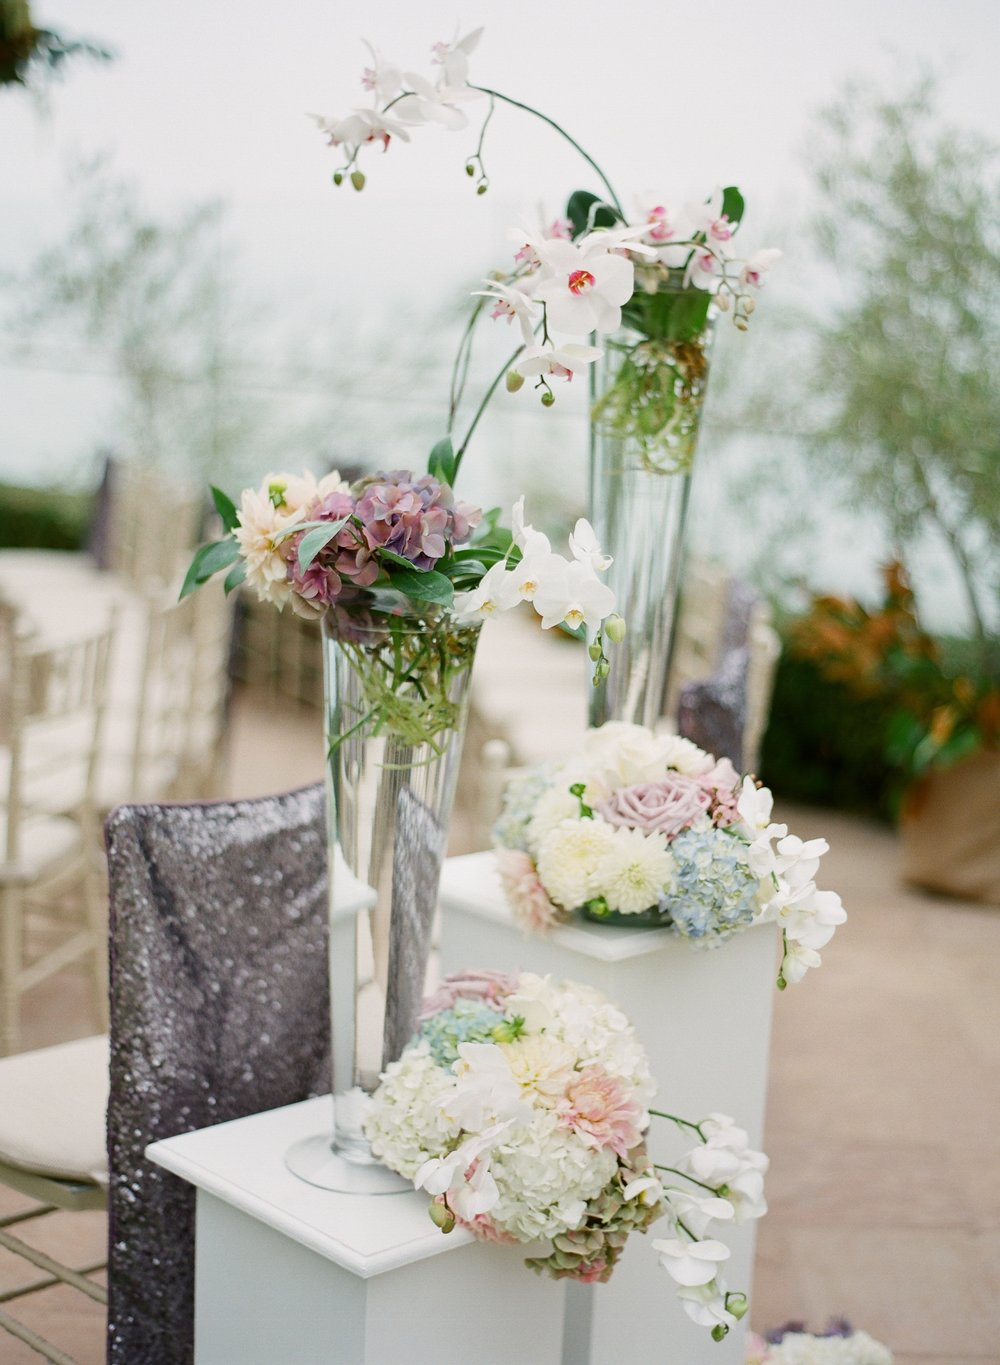 santabarbarawedding.com | Four Seasons Biltmore Wedding in Santa Barbara | Magnolia Event Design | Jose Villa | Floral